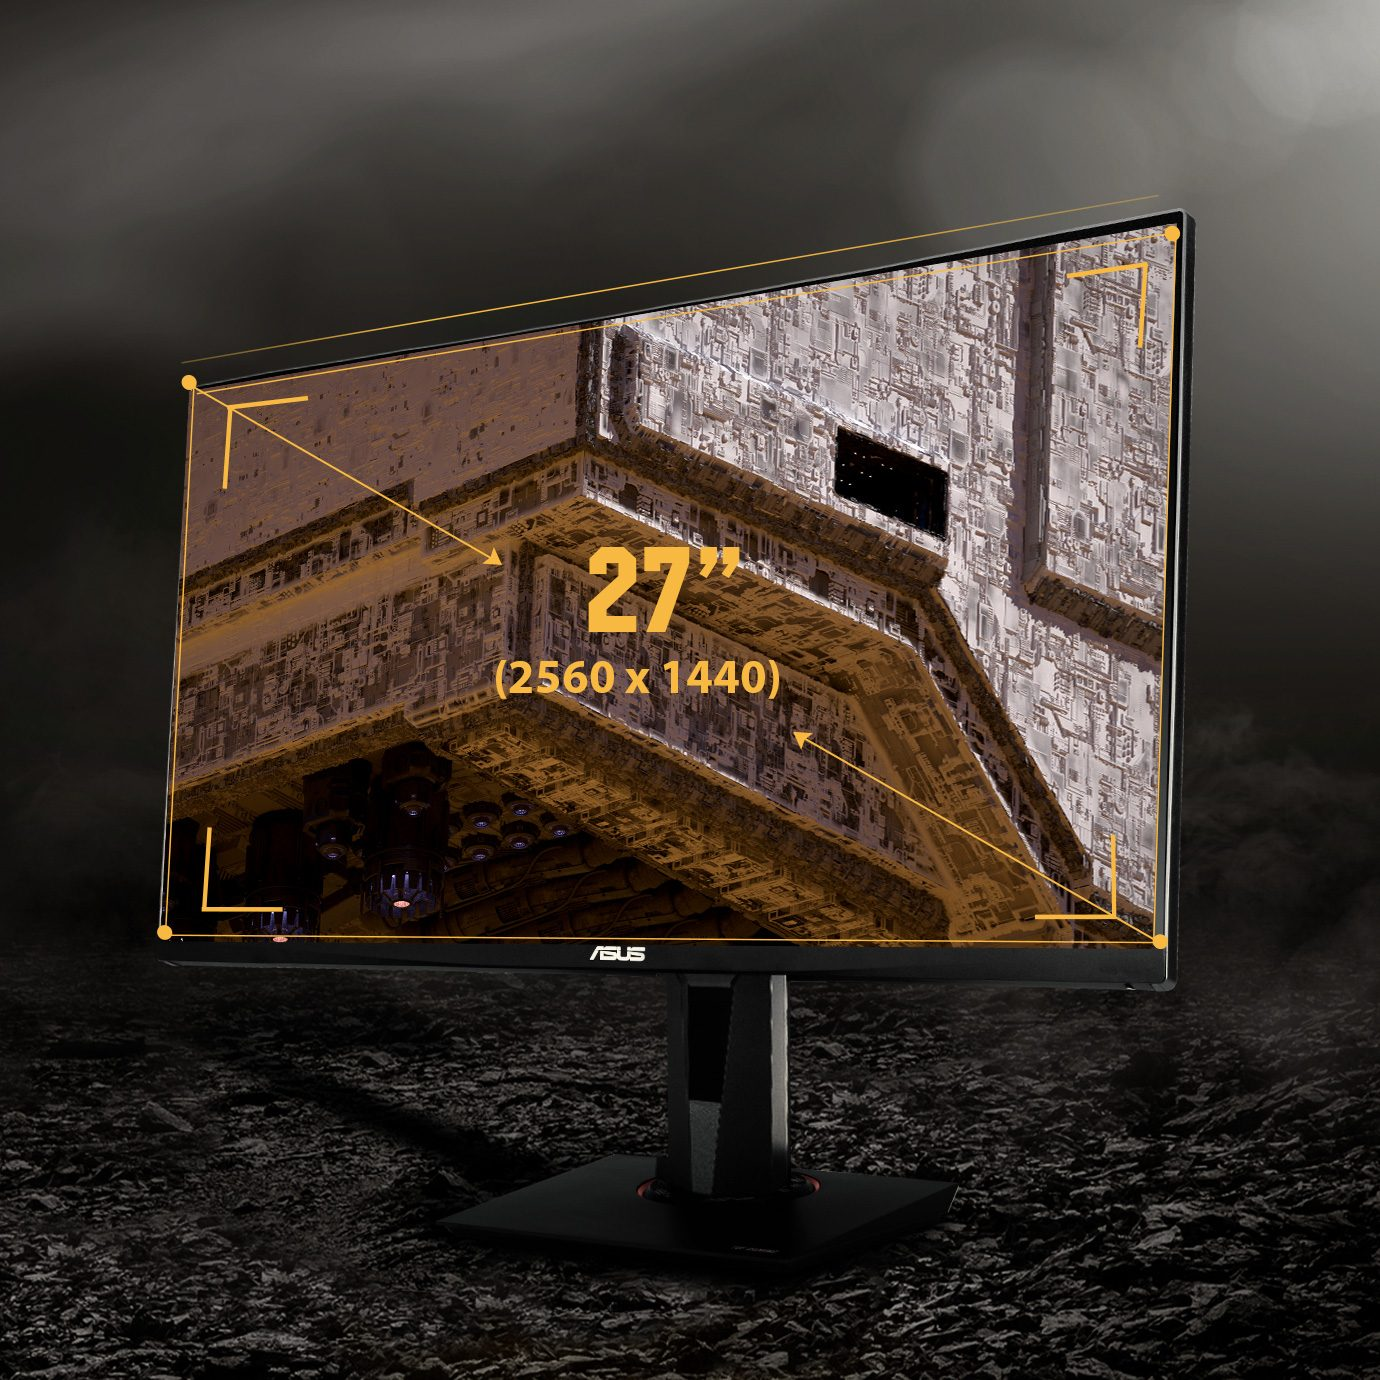 "2 asus tuf gaming vg27aq 27 165hz 1ms 2xhdmi dp wqhd hdr ips g sync uyumlu gaming monitor 13772 - ASUS TUF GAMING VG27AQ 27"" 2560x1440 WQHD 165Hz 1ms HDMI DP HDR IPS G-Sync Uyumlu Gaming Monitör"